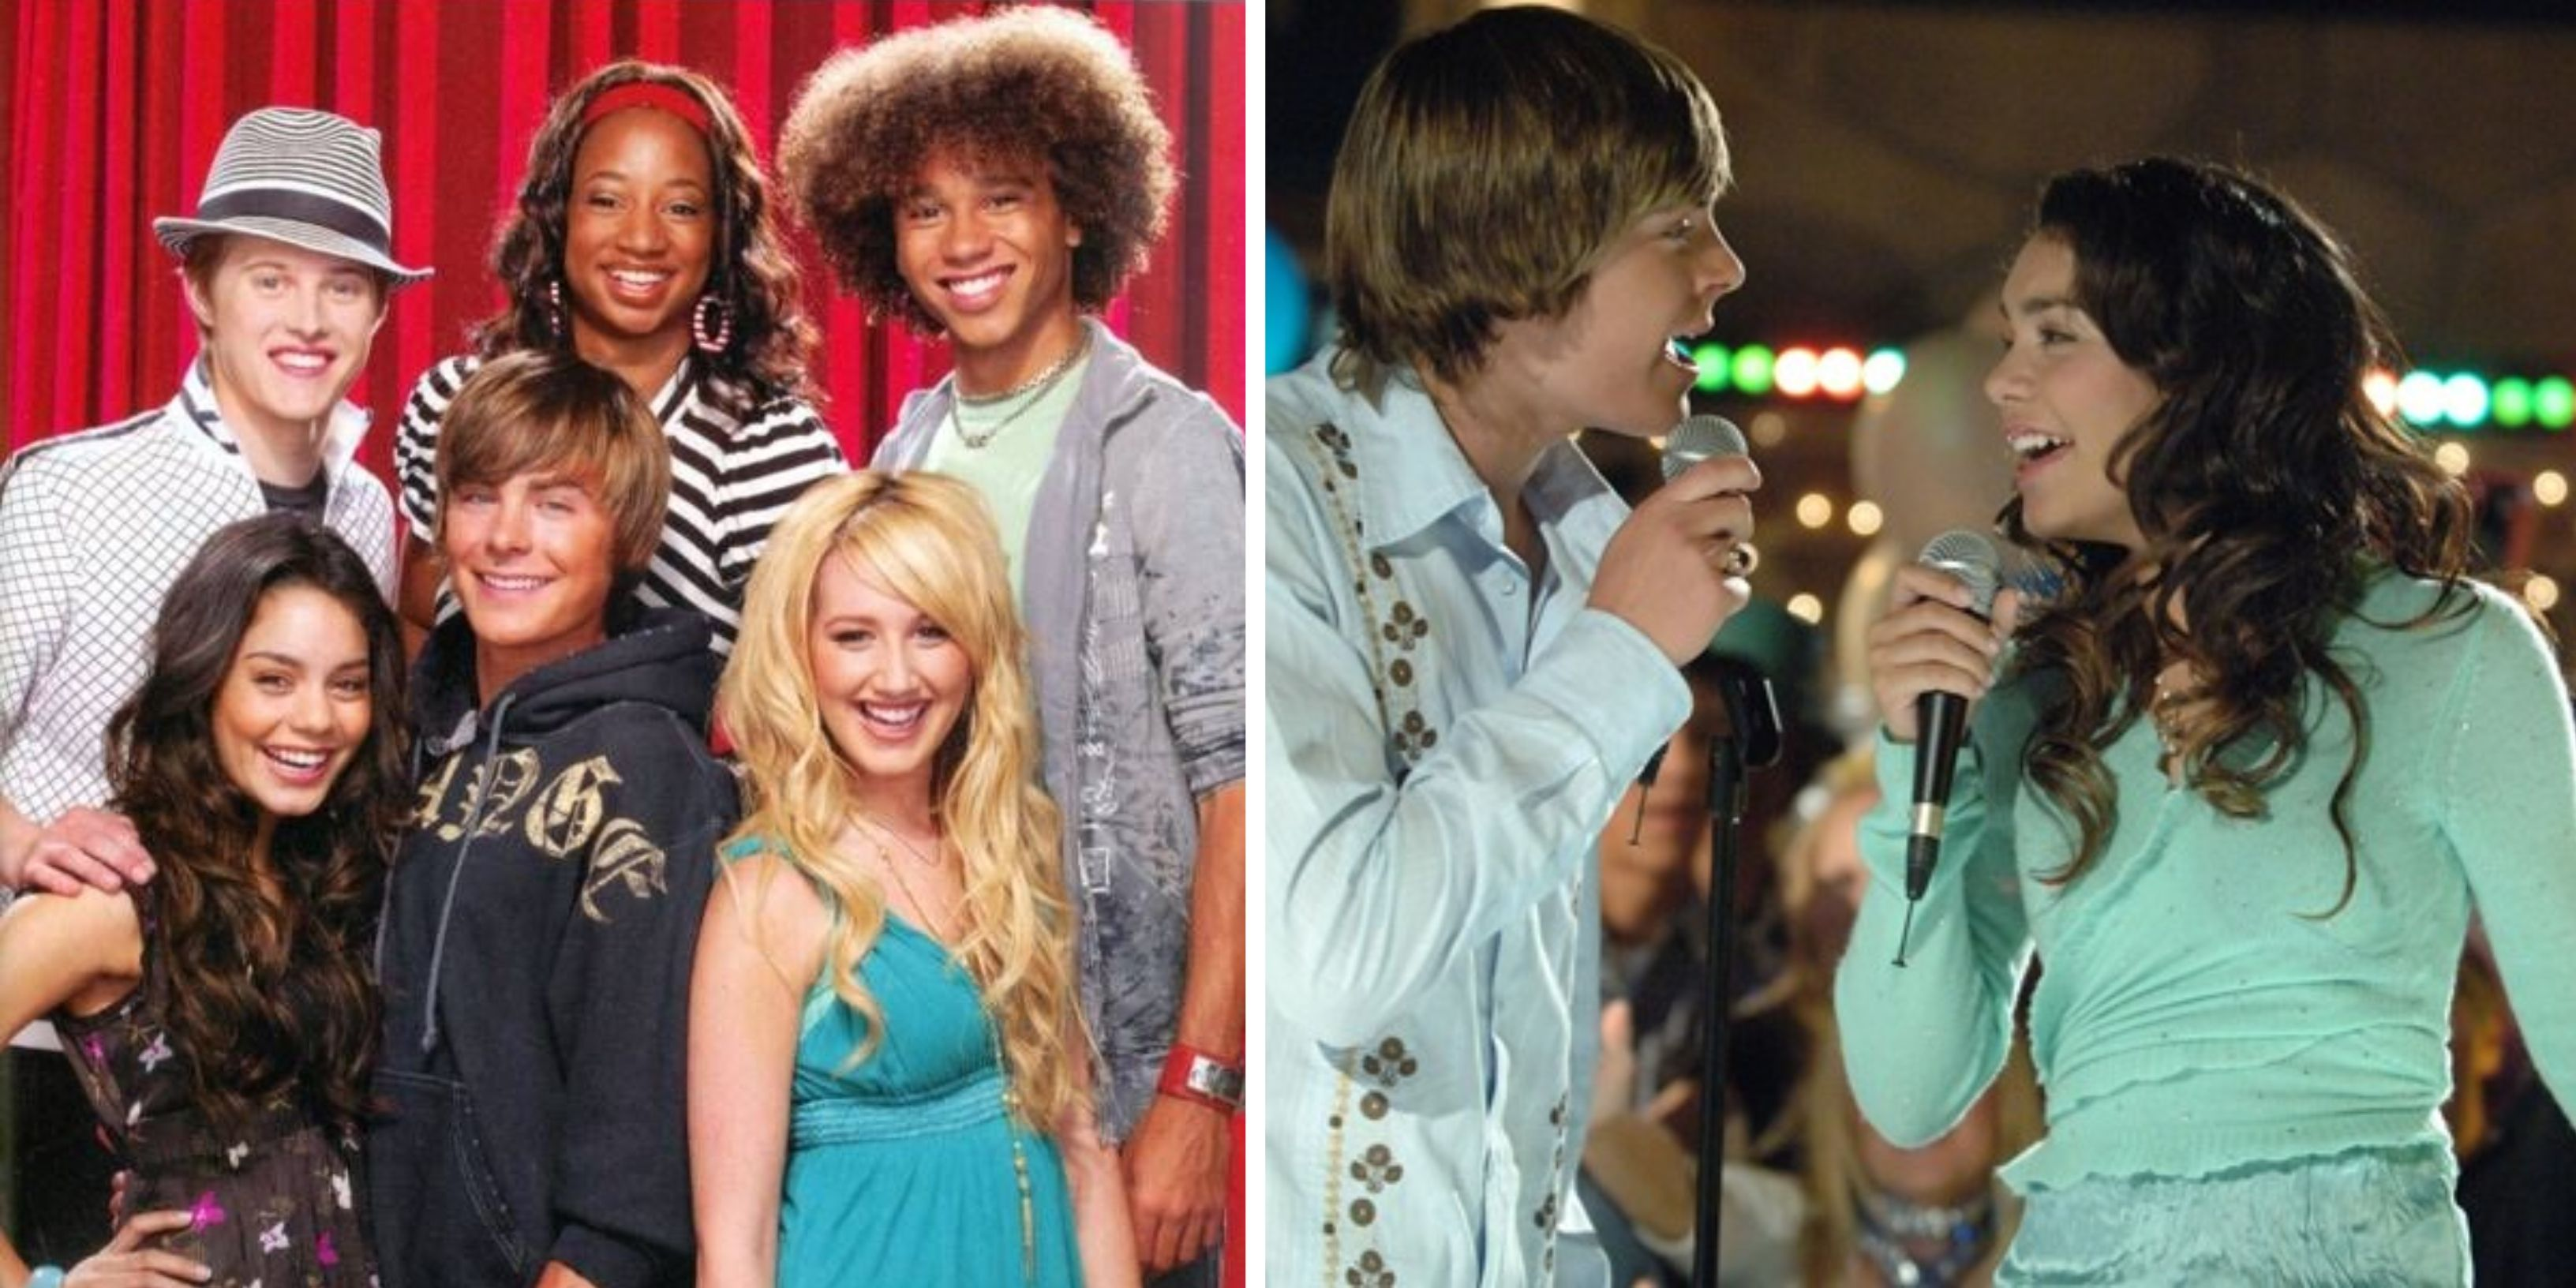 The Cast Of 'High School Musical' Ranked By How Many Roles They Played So Far